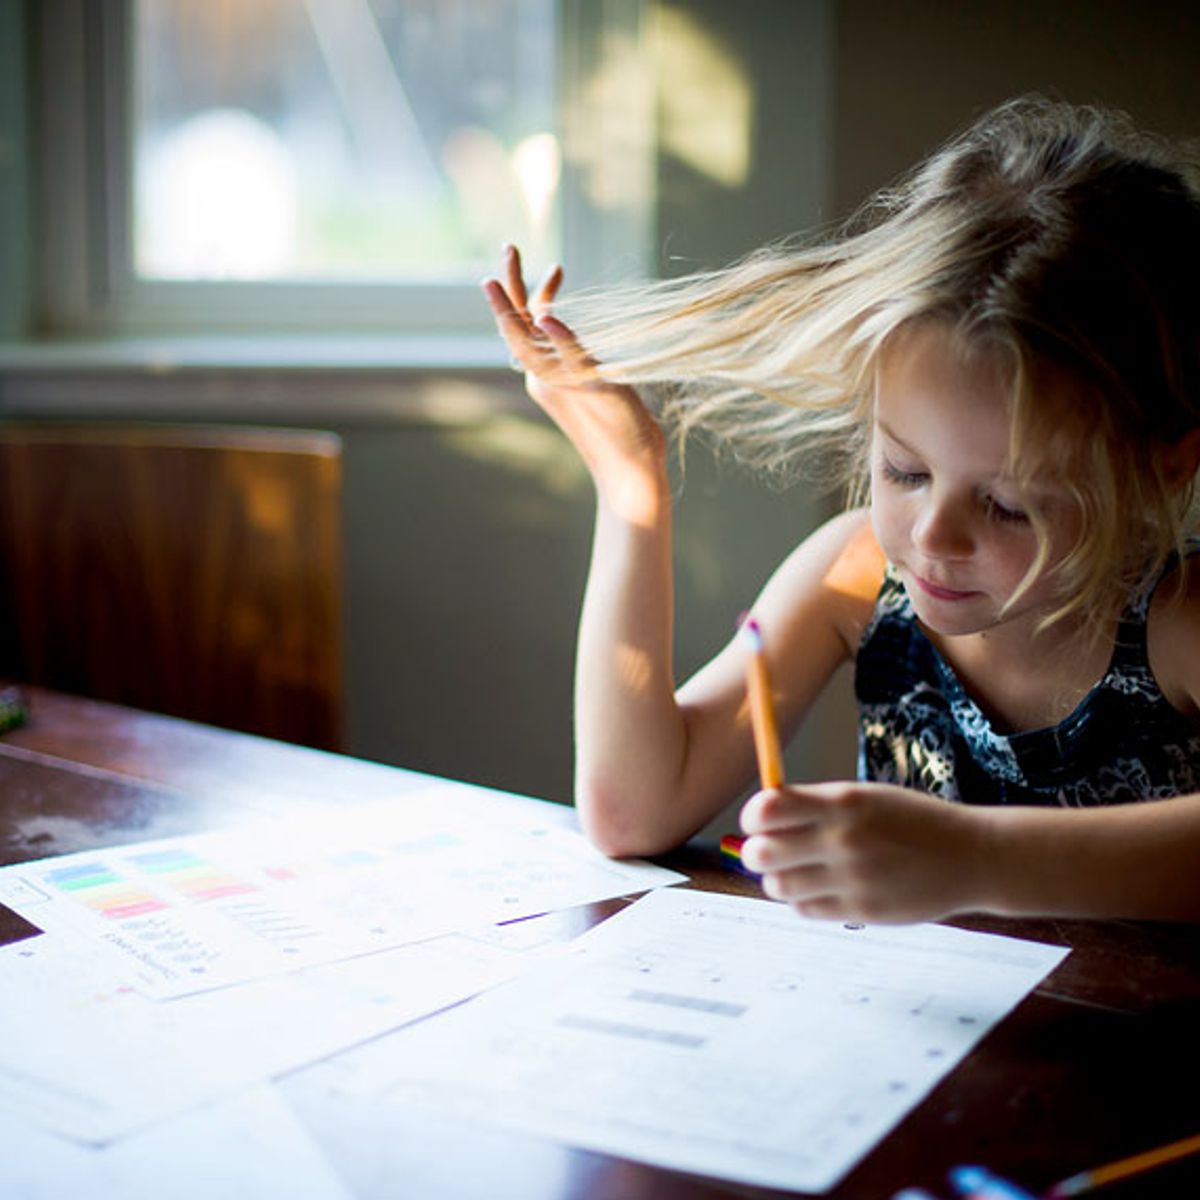 Experts say kids still have way too much homework